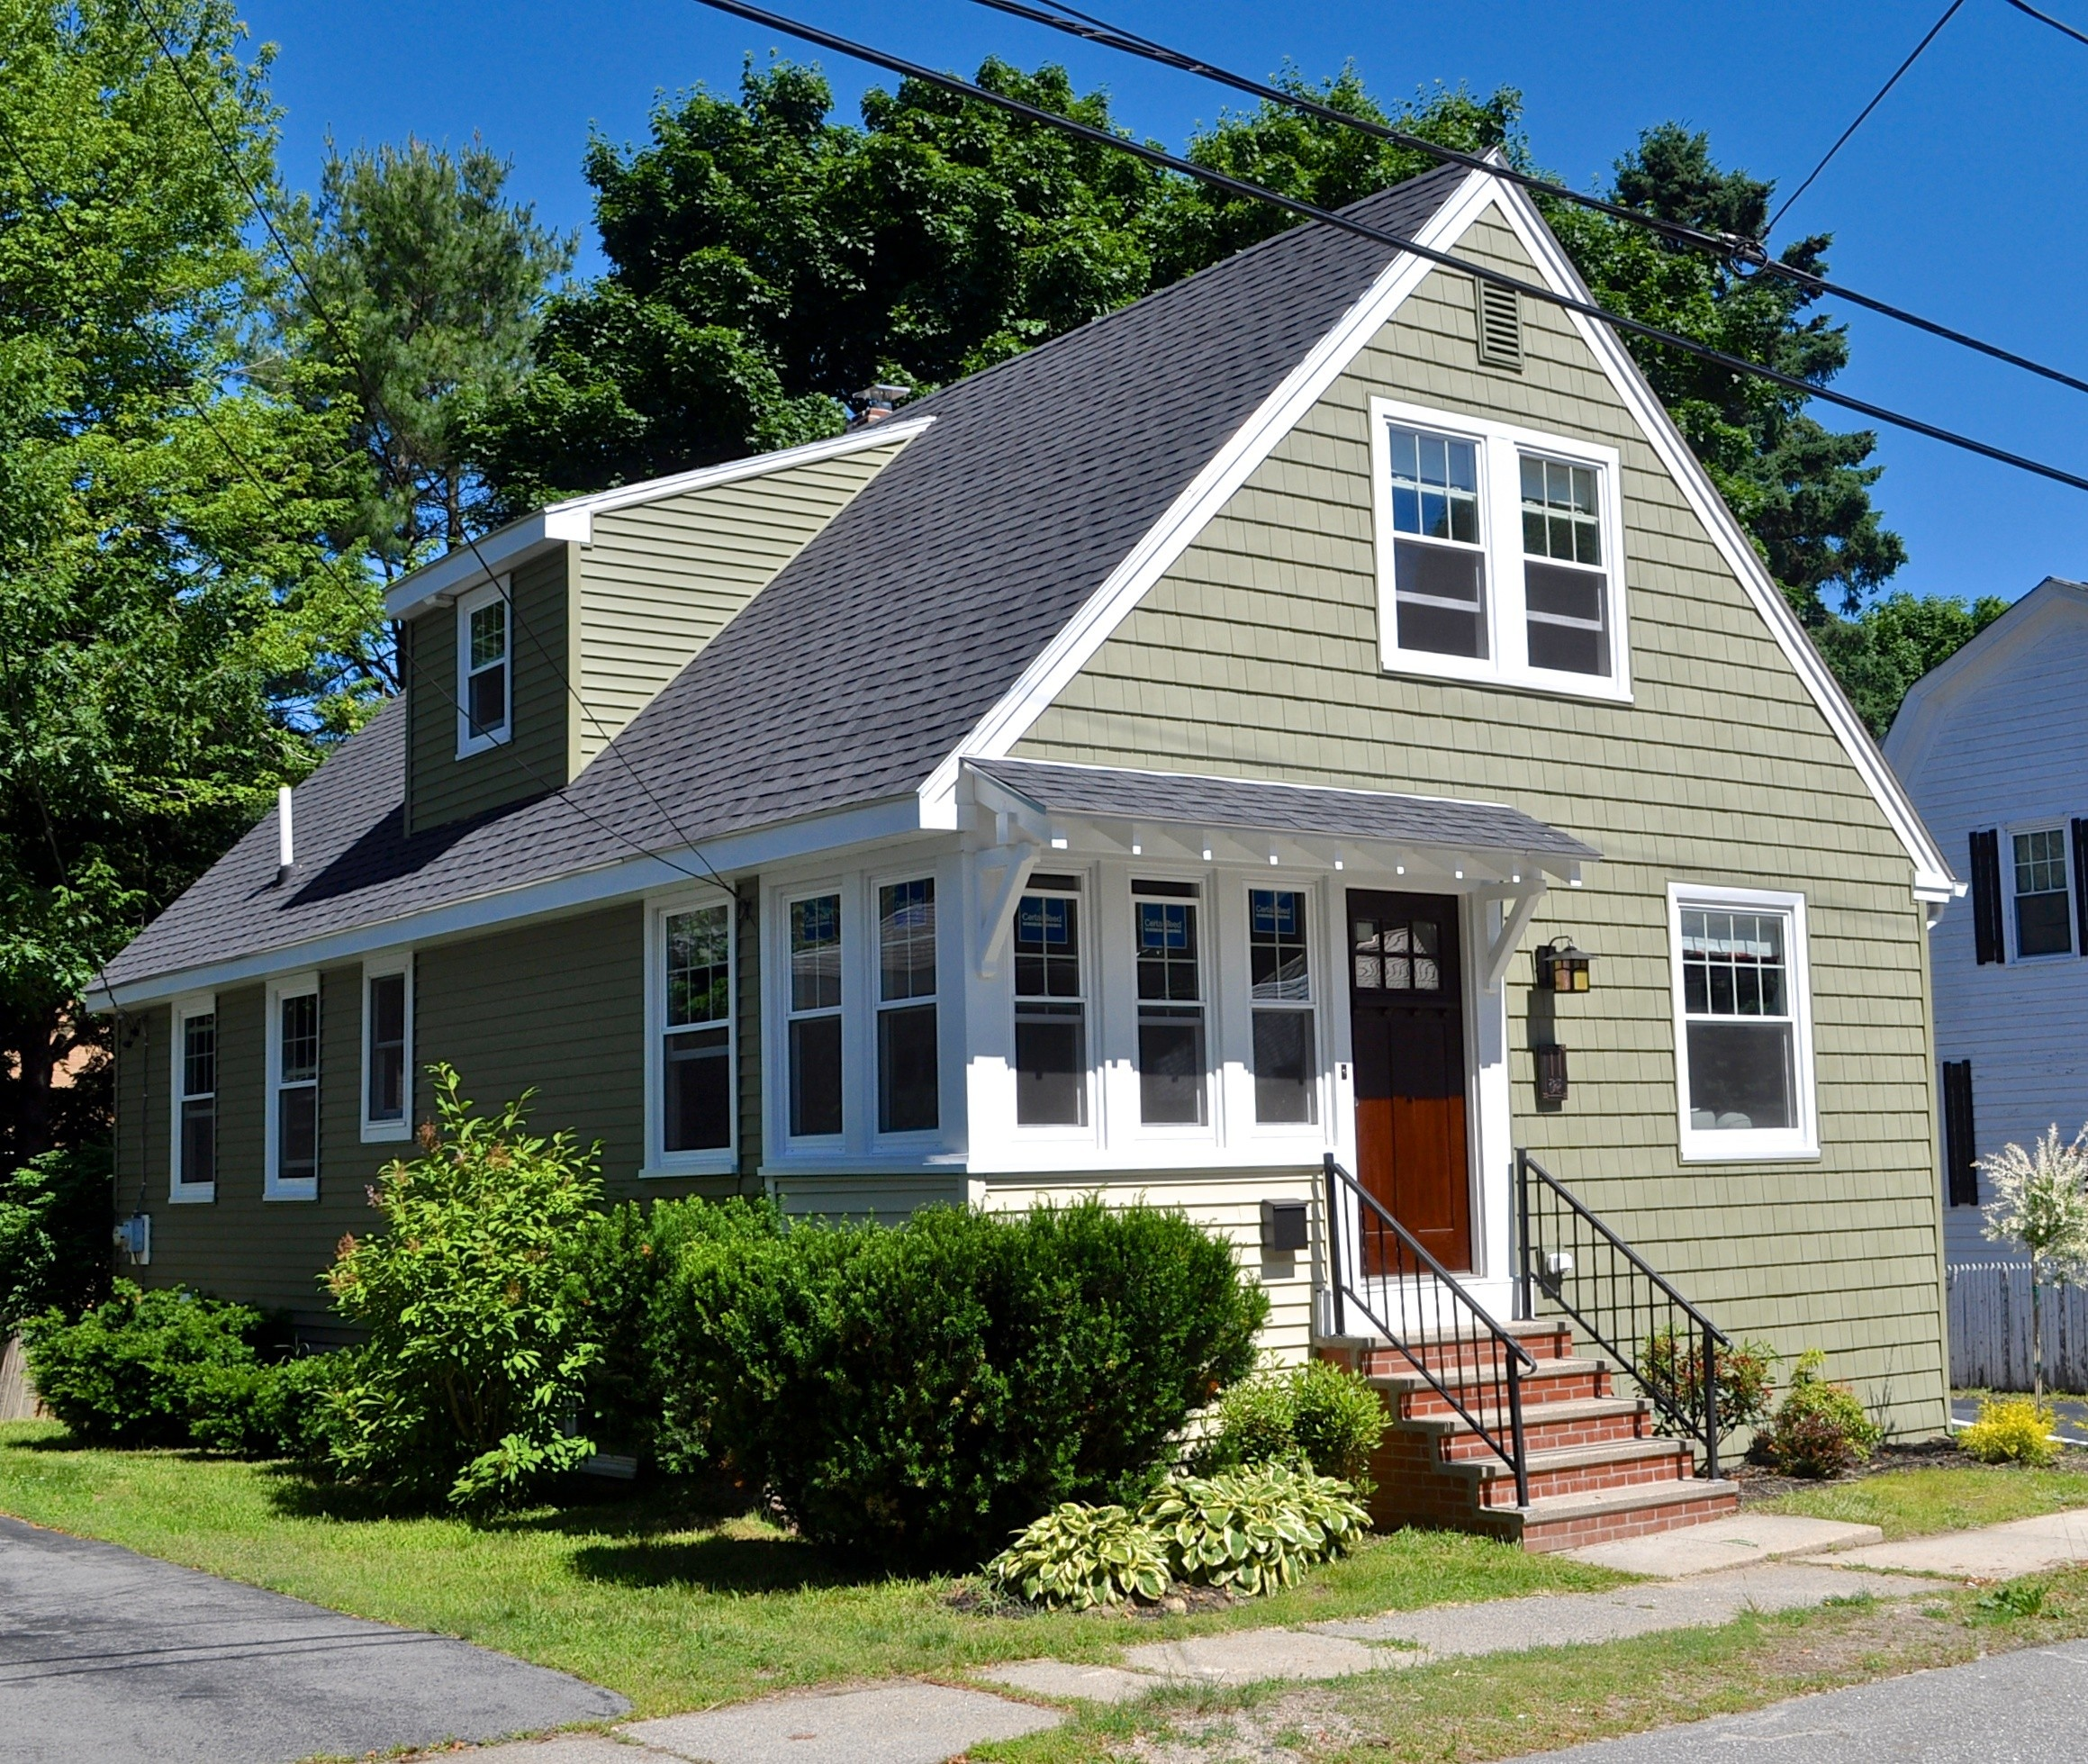 Here 39 s what hgtv doesn 39 t tell you about home renovations for Maine cottage house plans